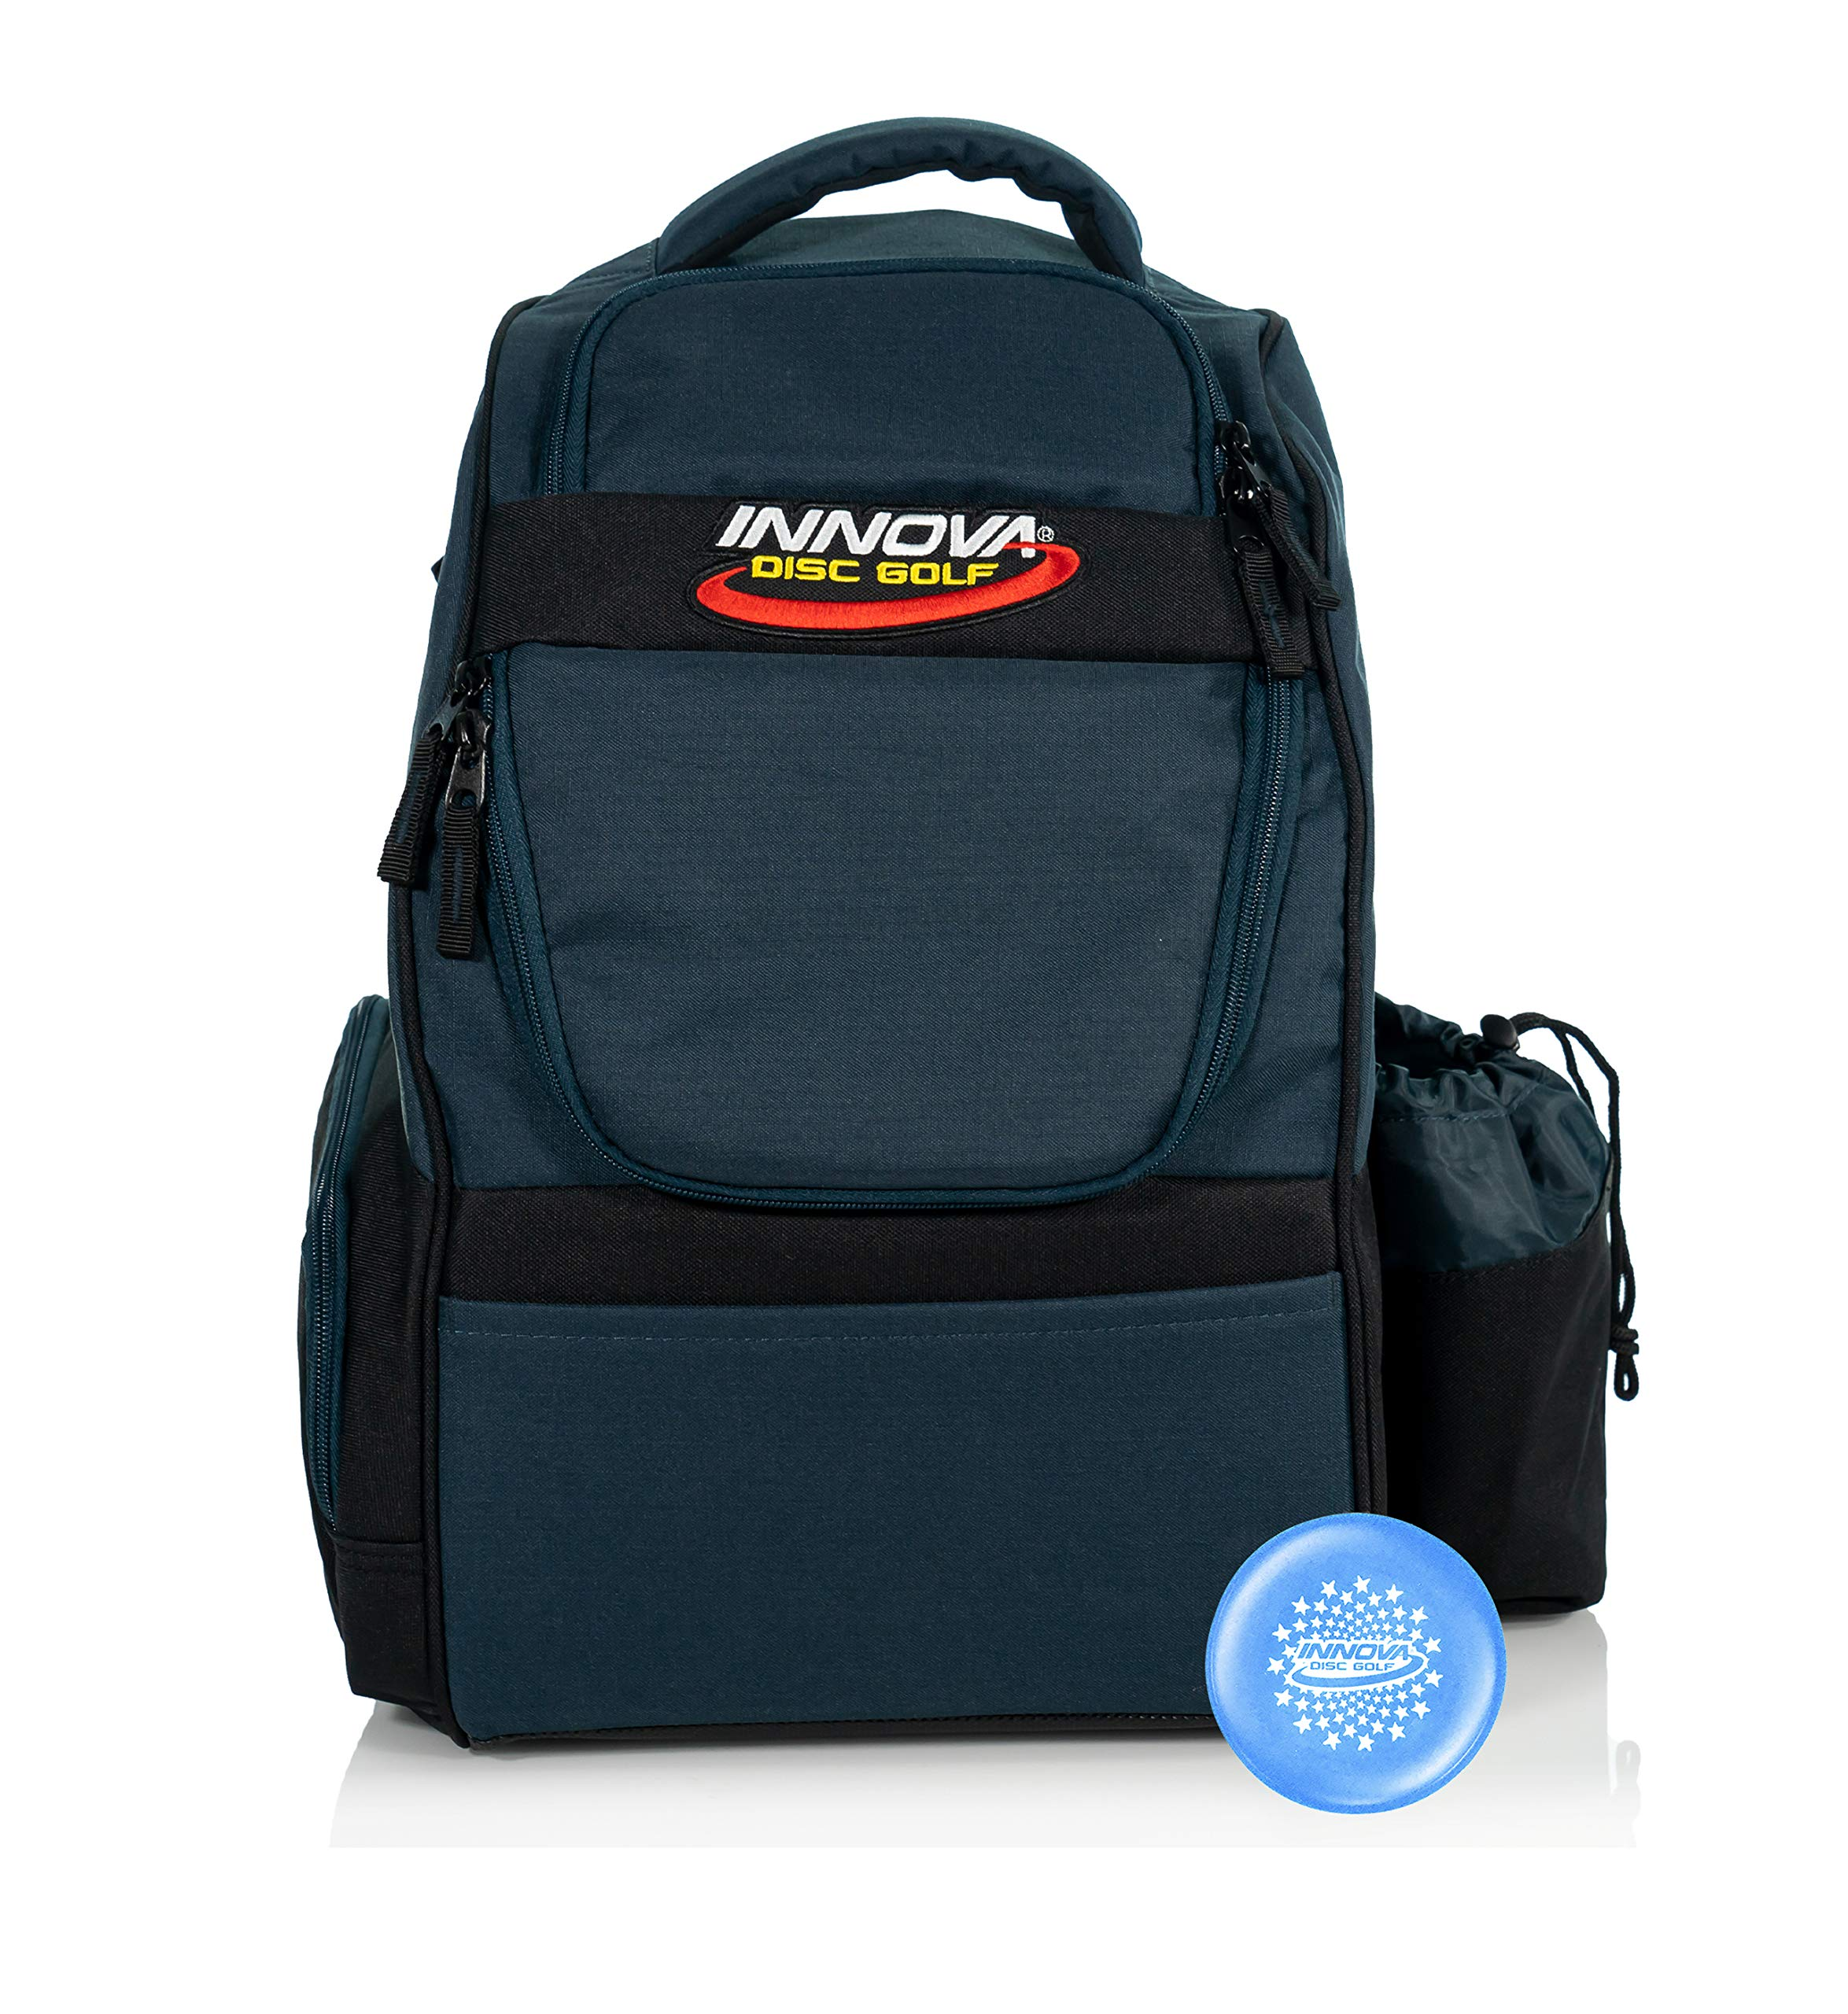 Innova Adventure Pack Backpack Disc Golf Bag - Holds 25 Discs - Lightweight - Includes Innova Limited Edition Stars Mini Marker (Navy/Black) by Innova Disc